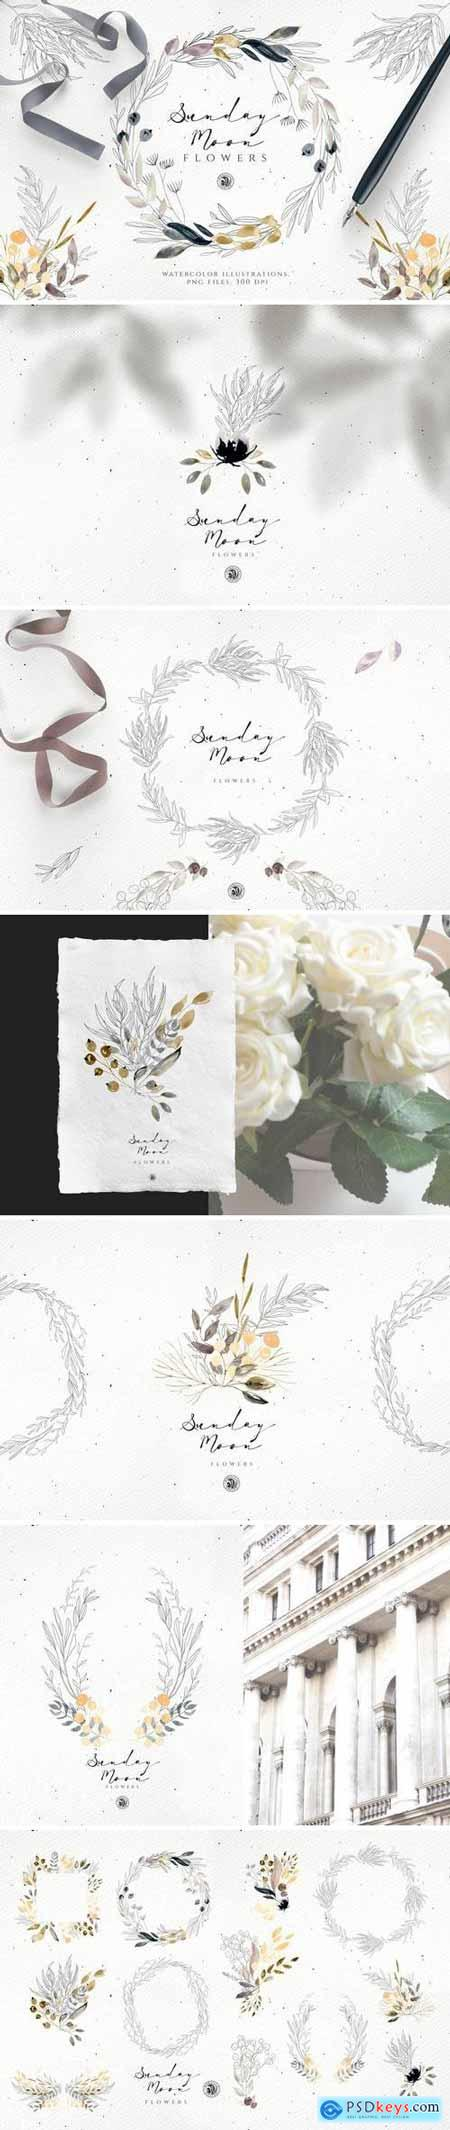 Creativemarket Sunday Moon Flowers